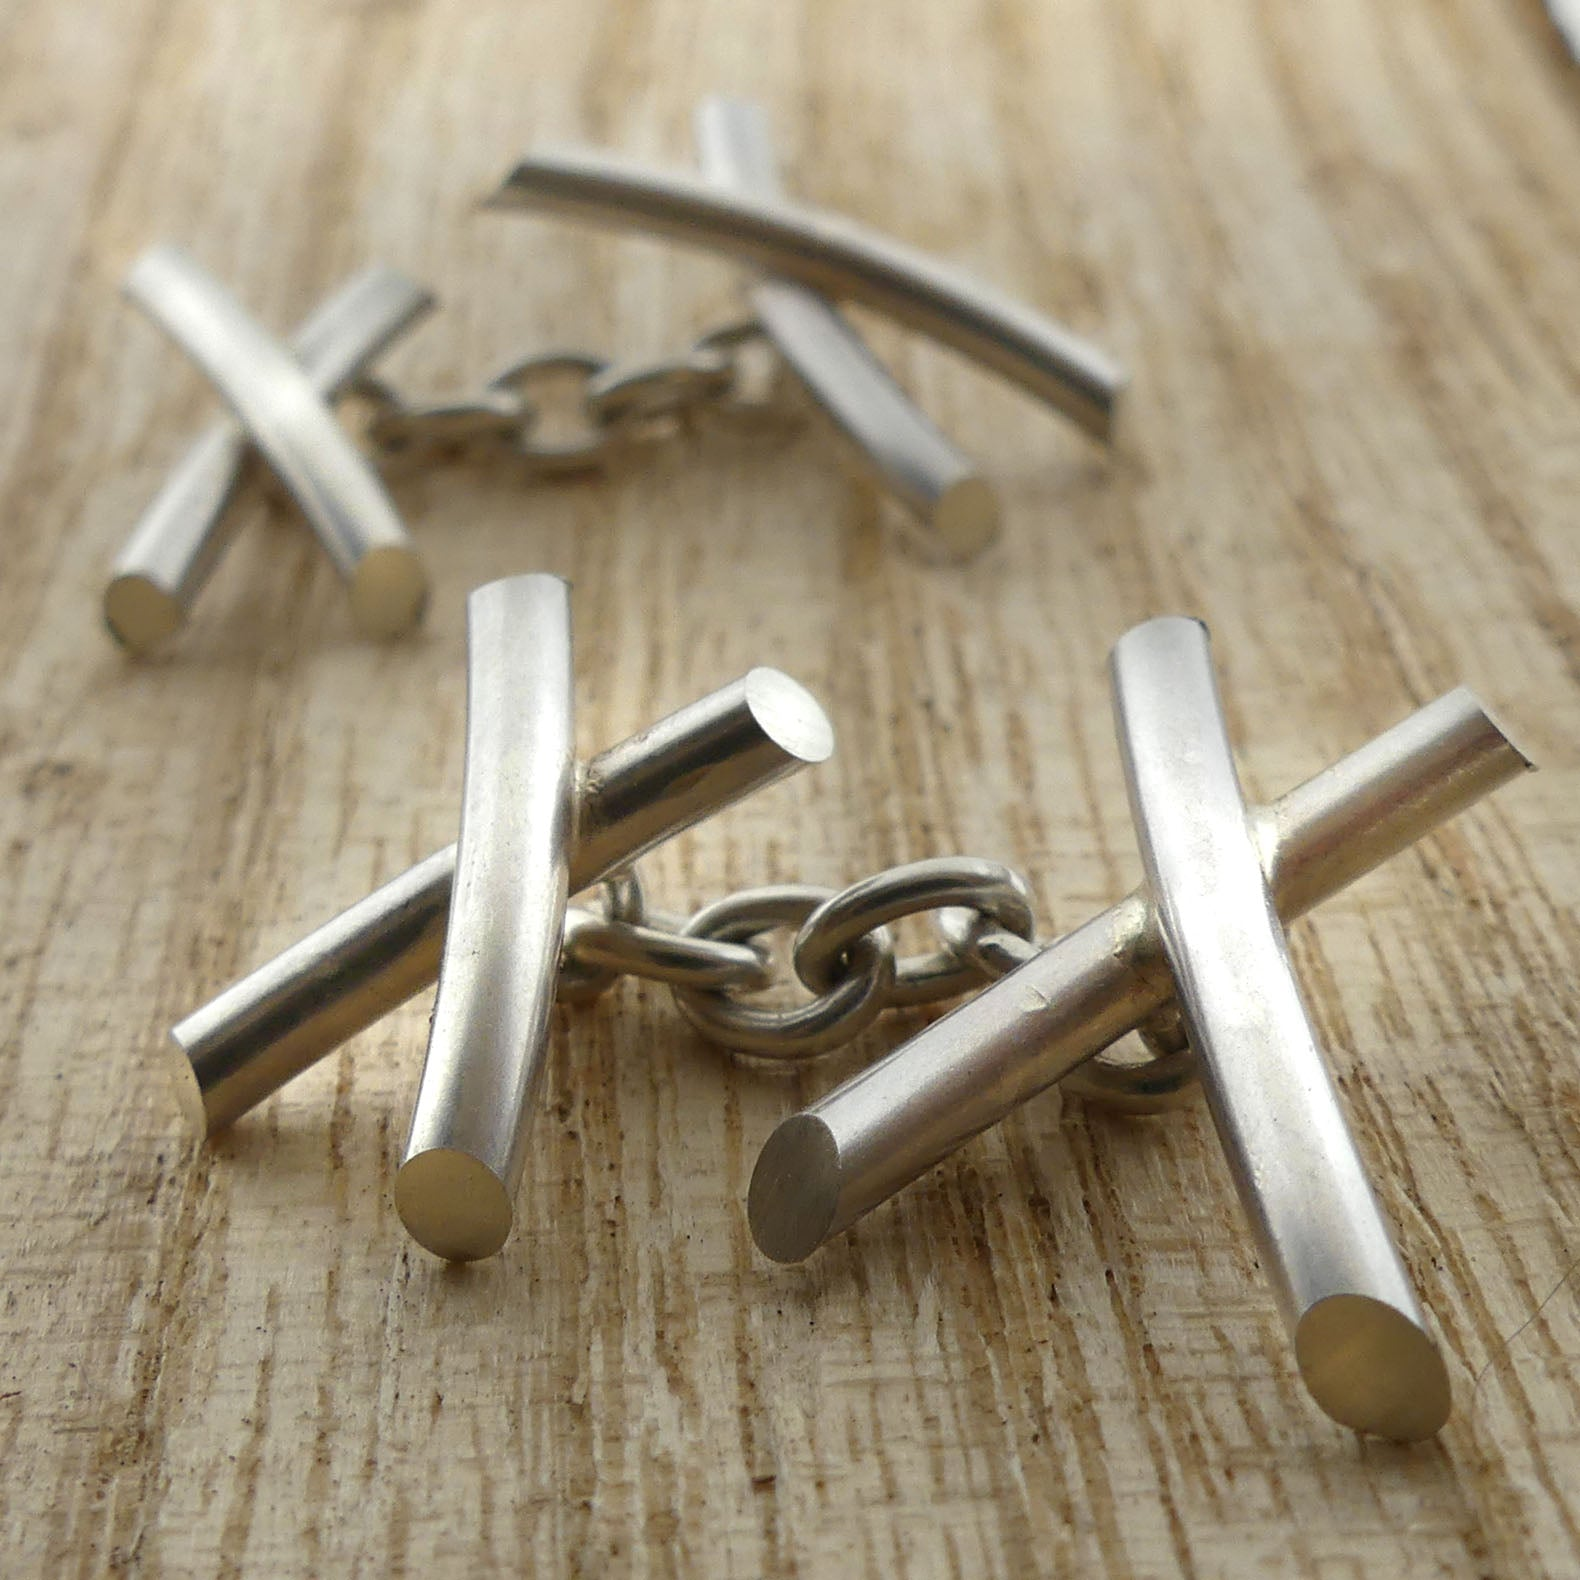 Silver 'Kiss' cufflinks on wood